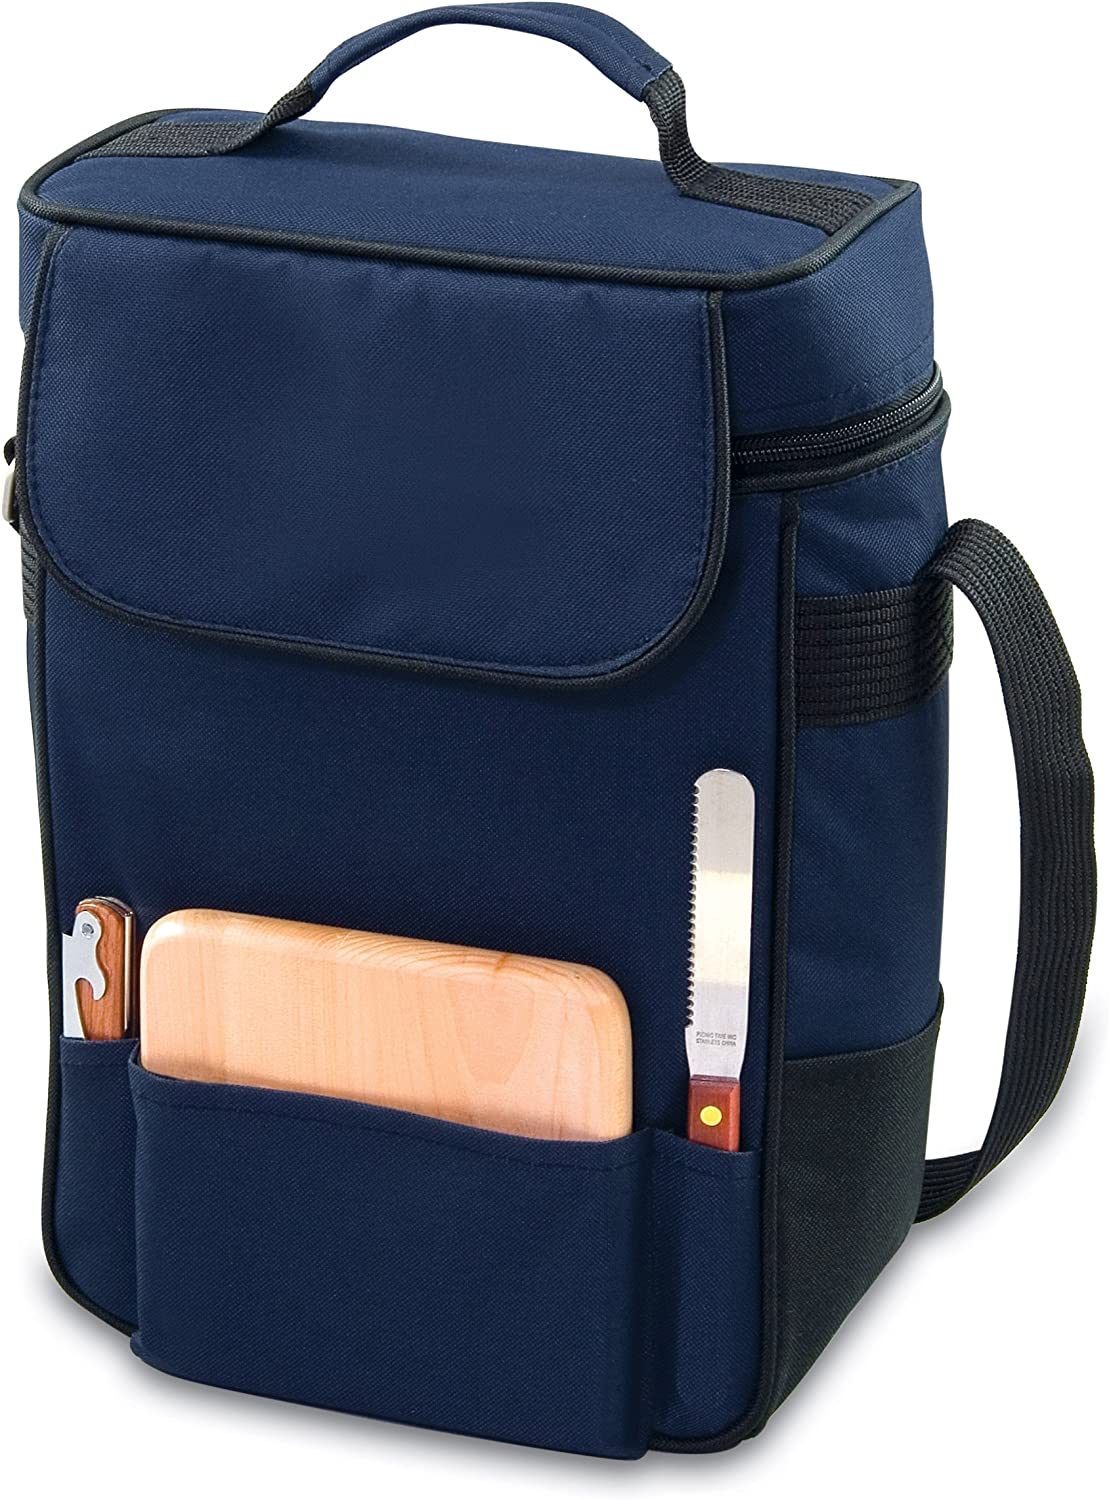 LEGACY - a Picnic Time New life Brand Wine Duet and Cheese Tote SEAL limited product Insulated